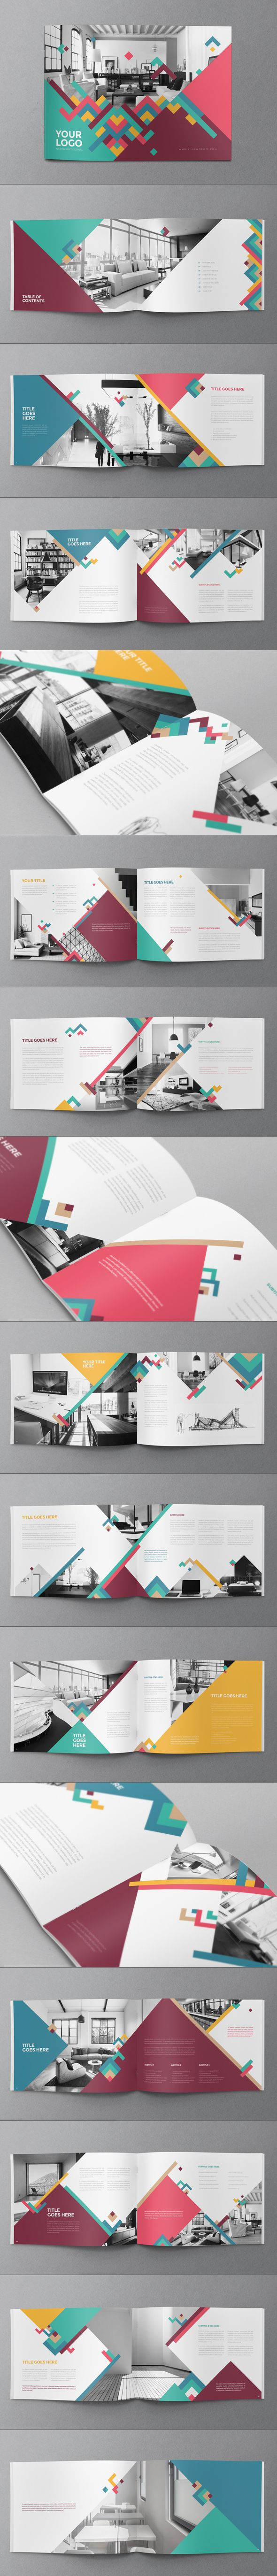 Colorful Pattern Brochure 2 by Abra Design, via Behance